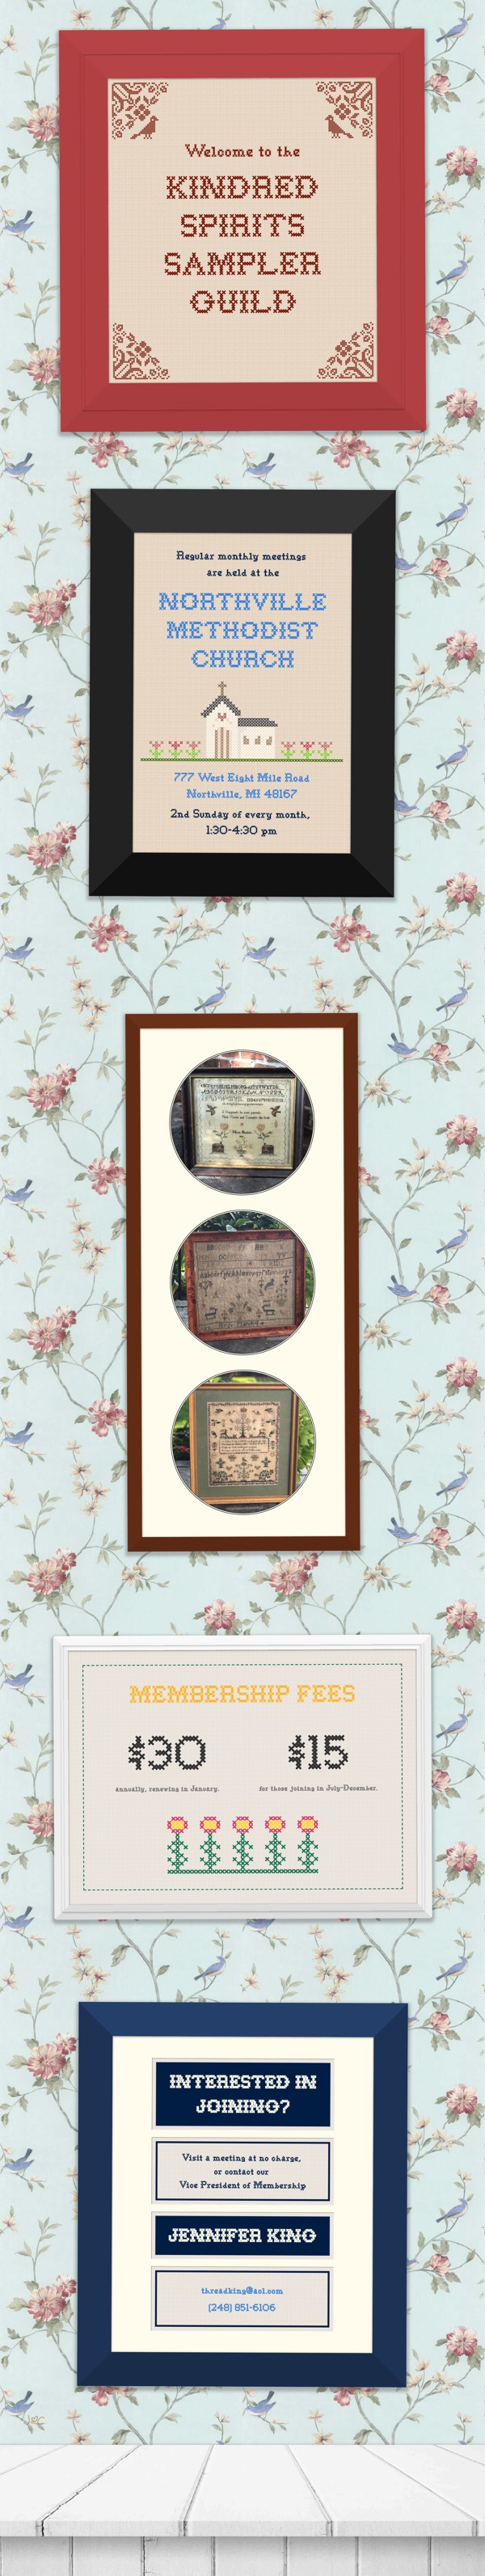 Kindred Spirits Sampler Guild website